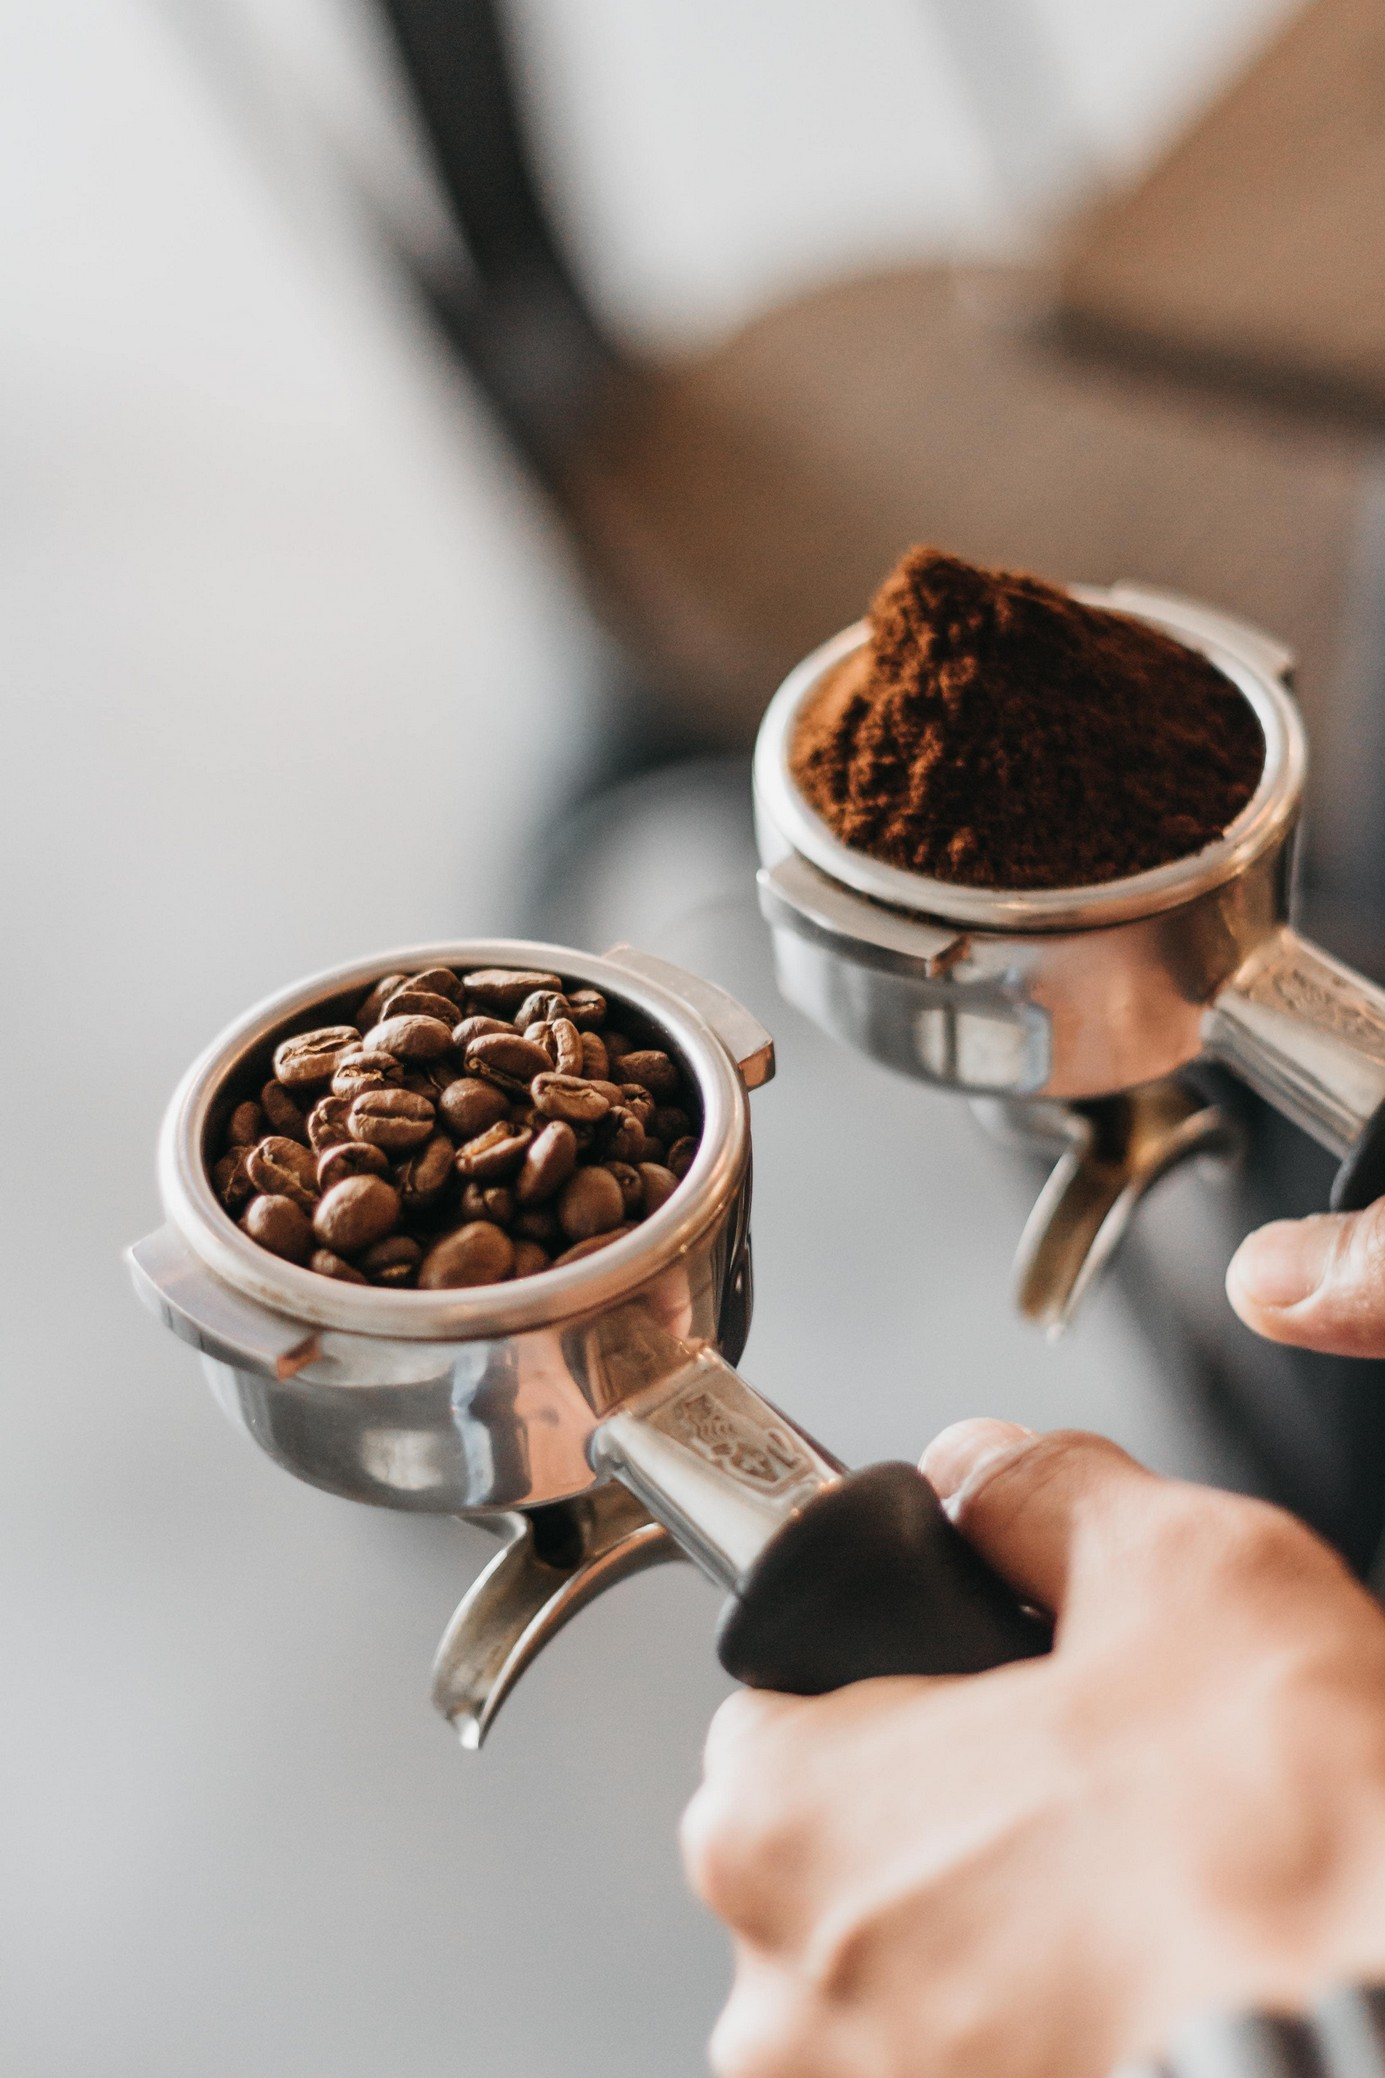 Two portafilters with black handles, being held, one with coffee beans and the other with grounded coffee beans.